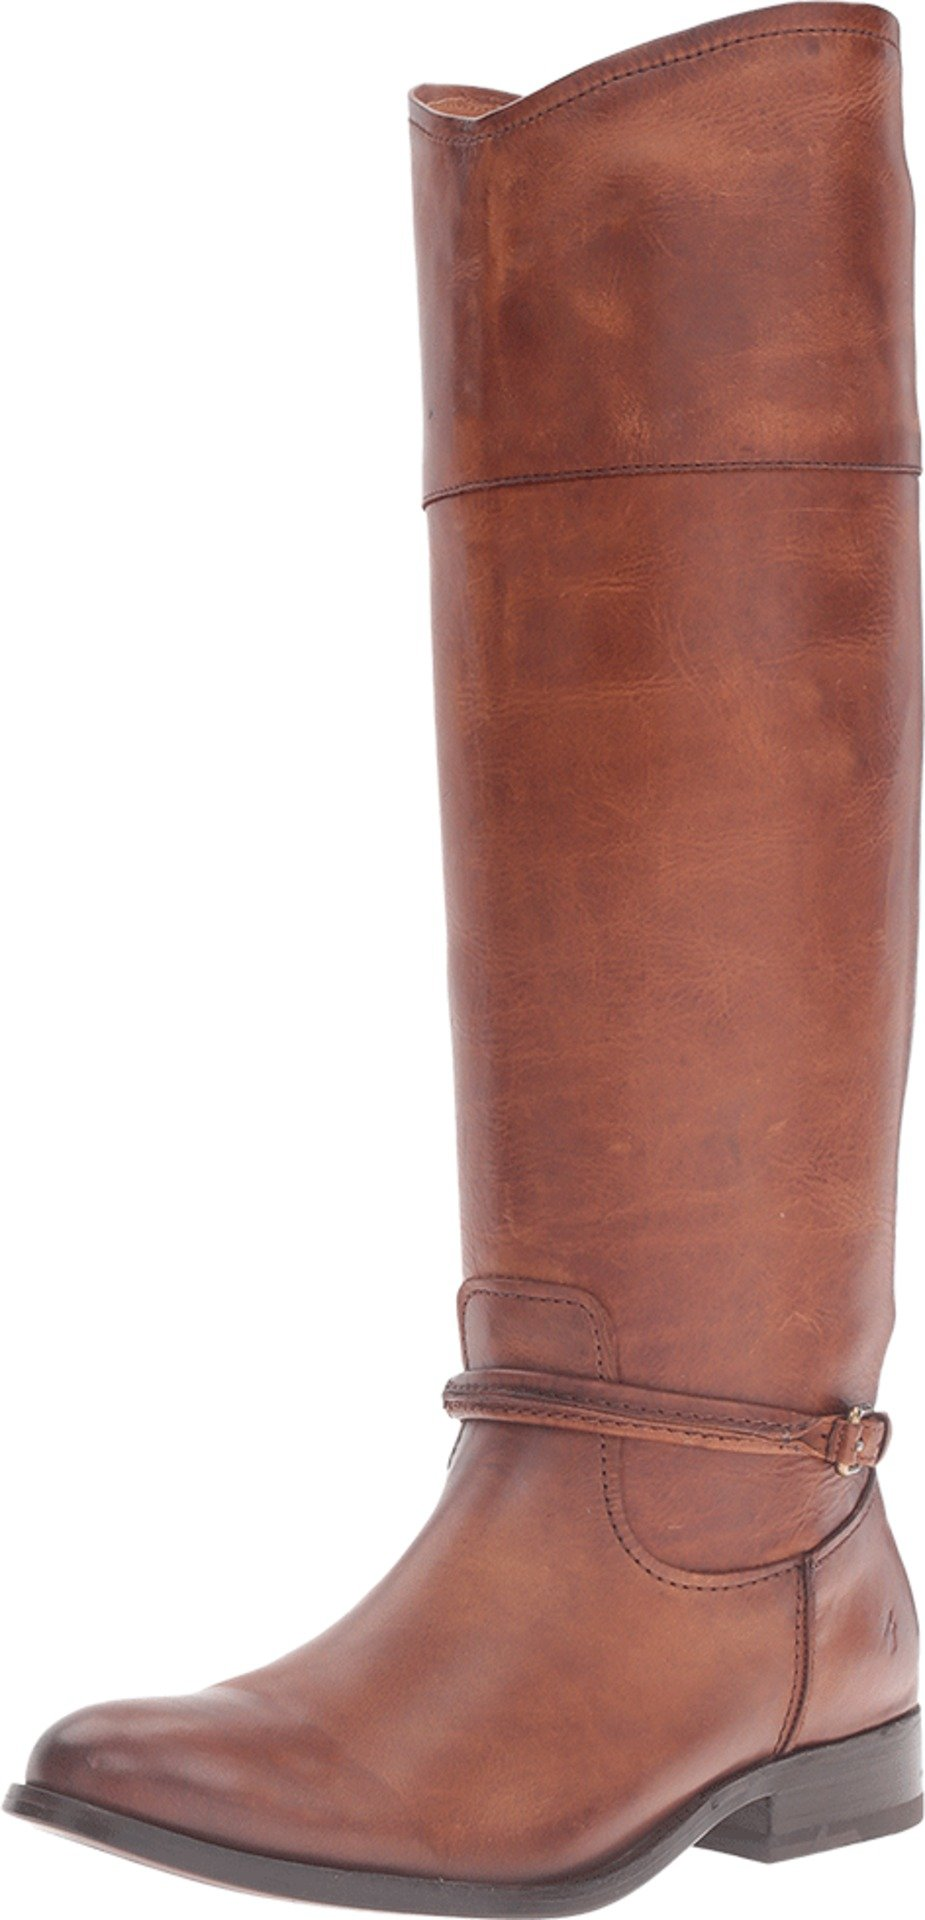 FRYE Women's Melissa Seam Tall Riding Boot, Cognac, 7 M US by FRYE